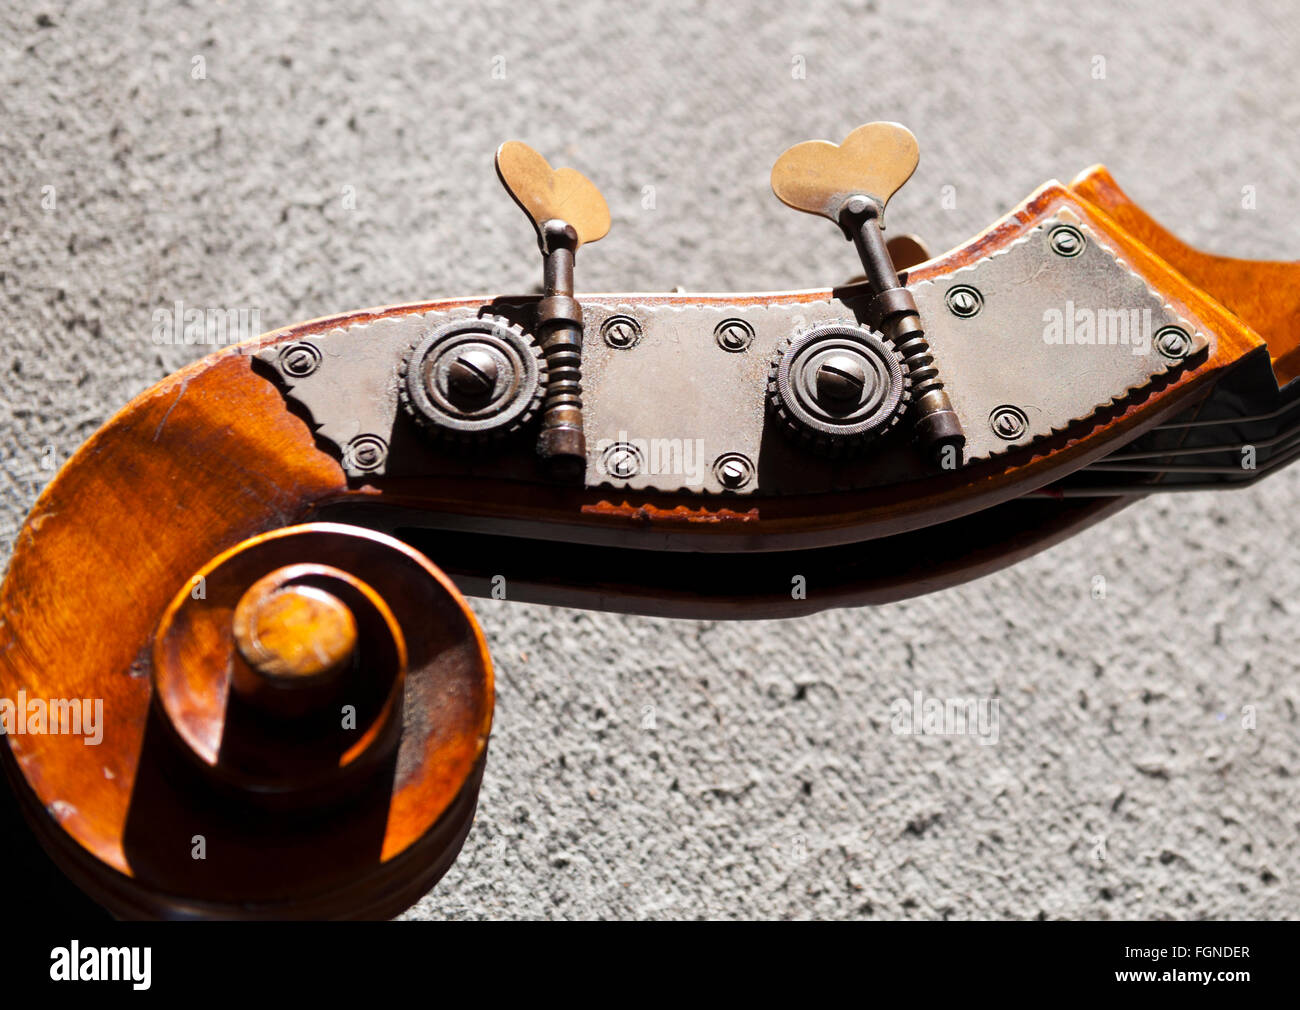 cello / stand up bass, tuning keys, head stock Stock Photo